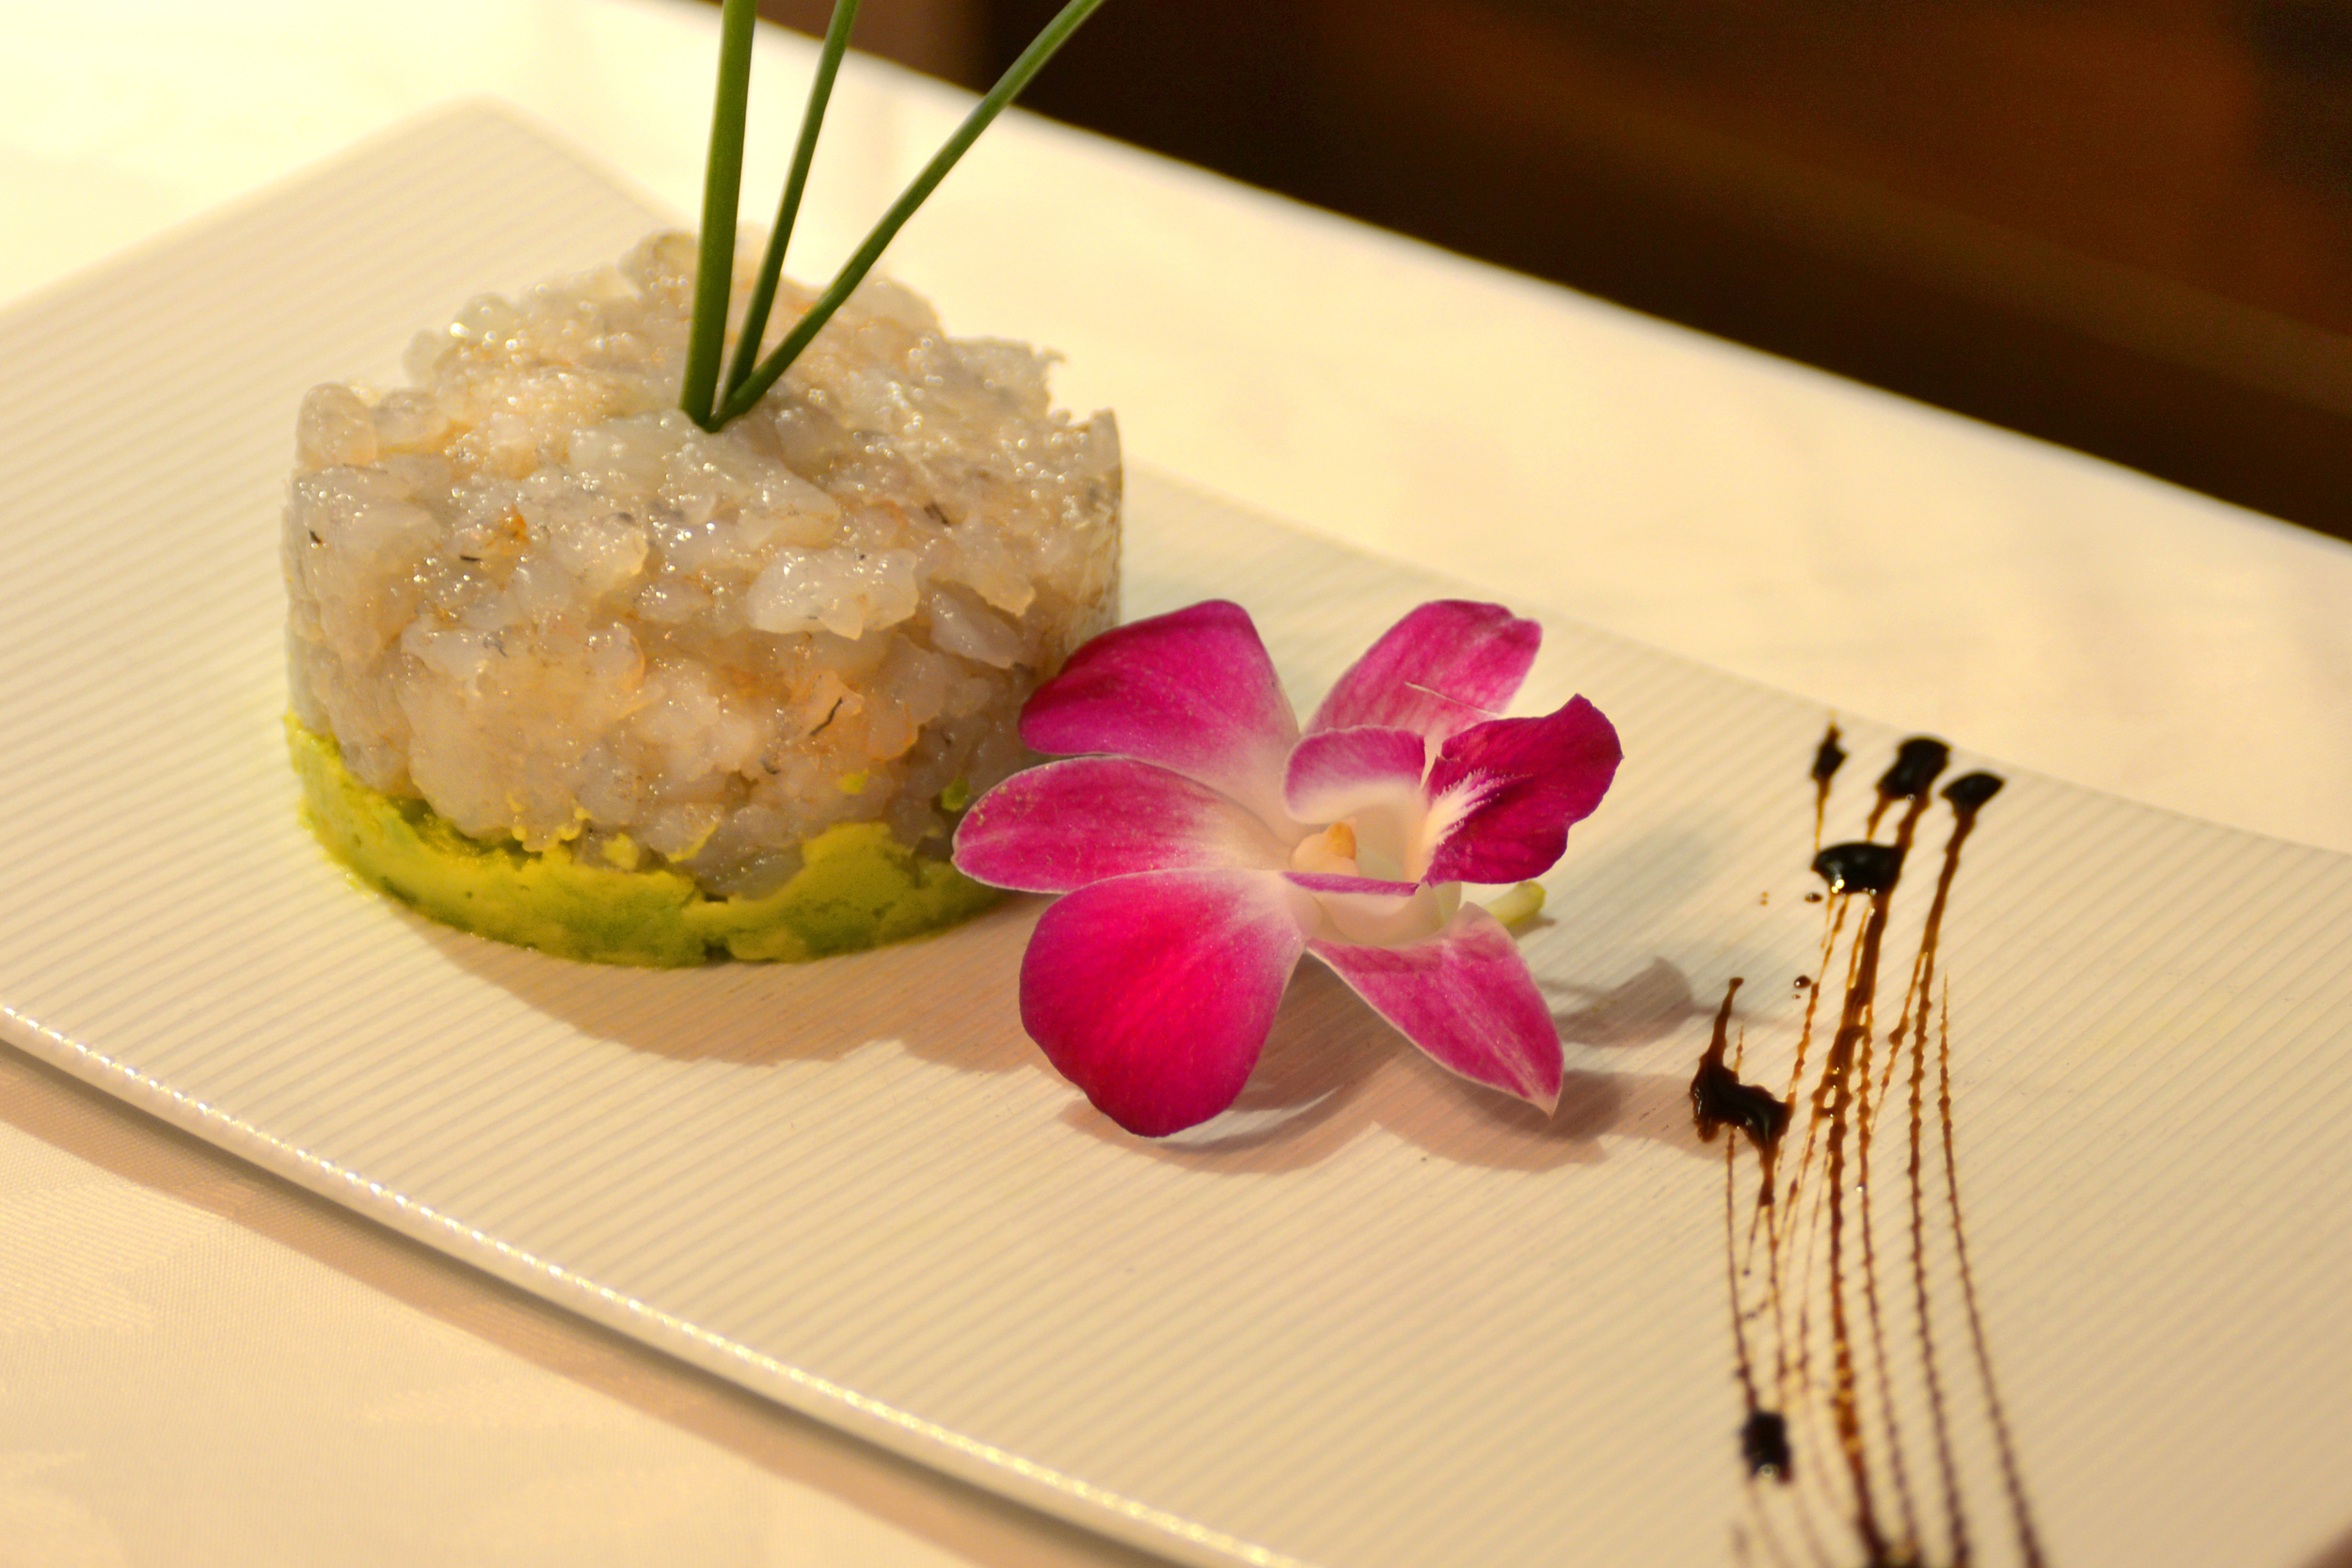 Shrimp Tartar on Avocado Bed